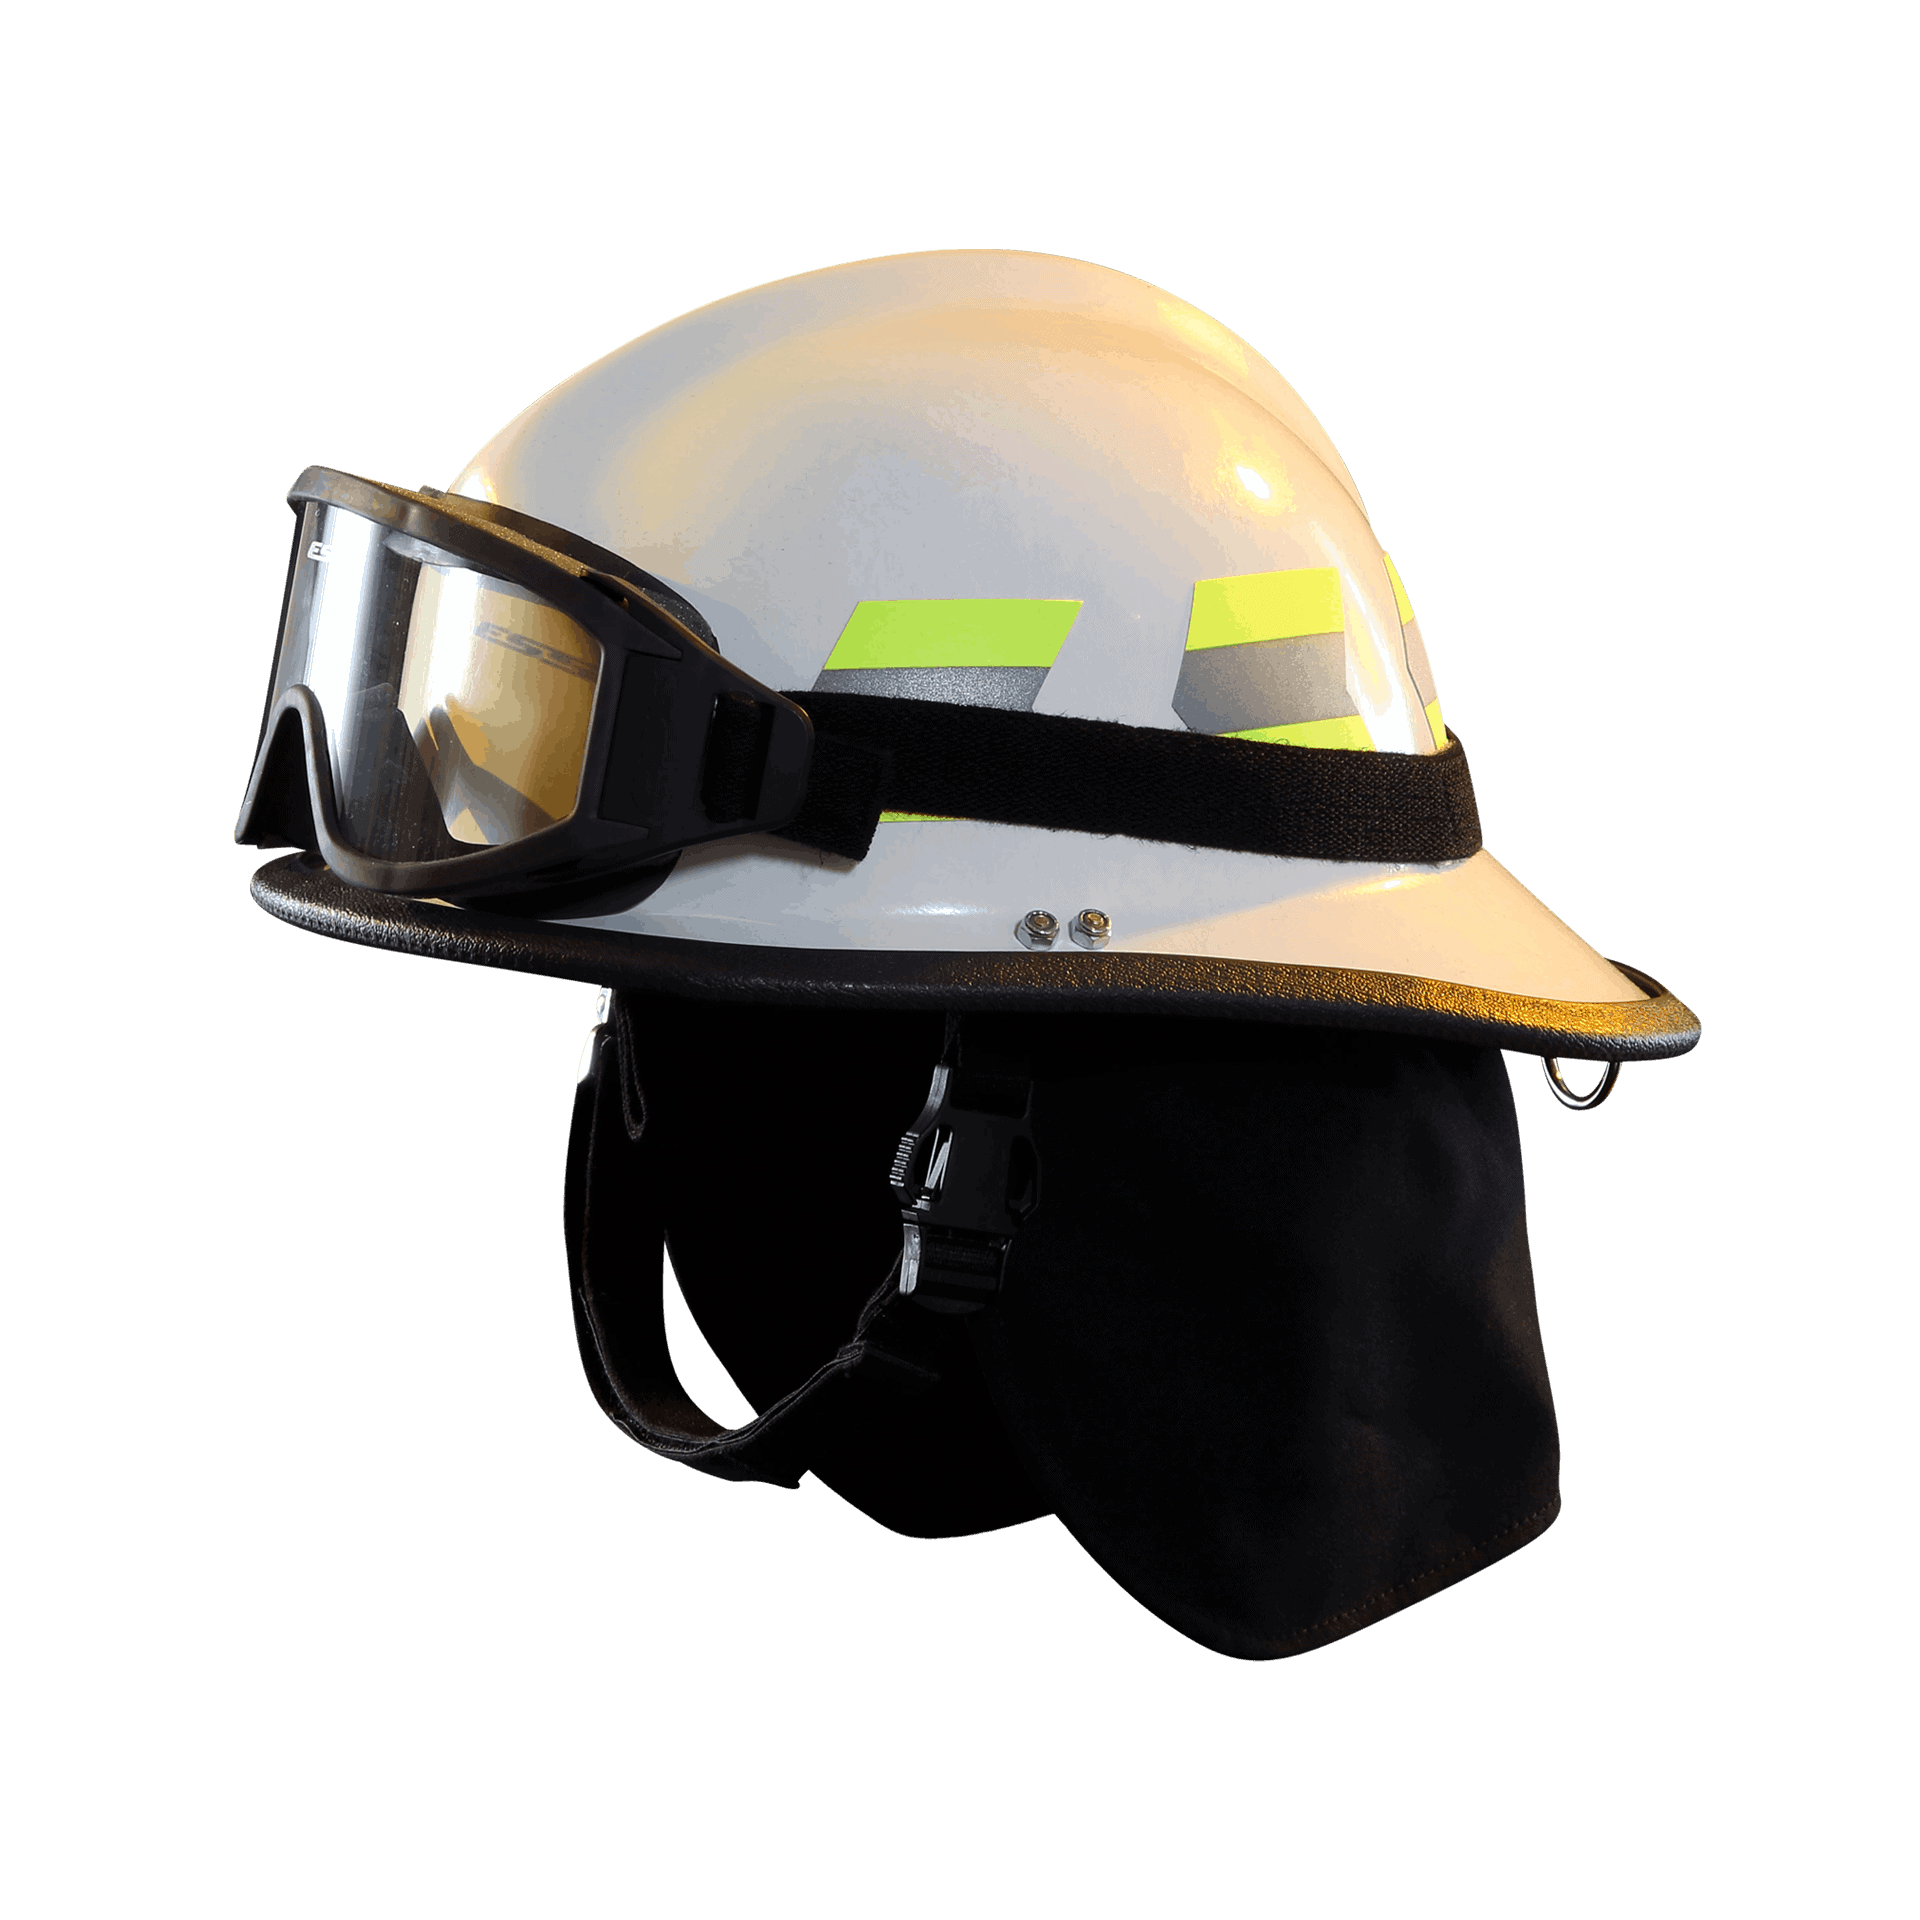 Fire-Dex Modern Helmet with goggles - white